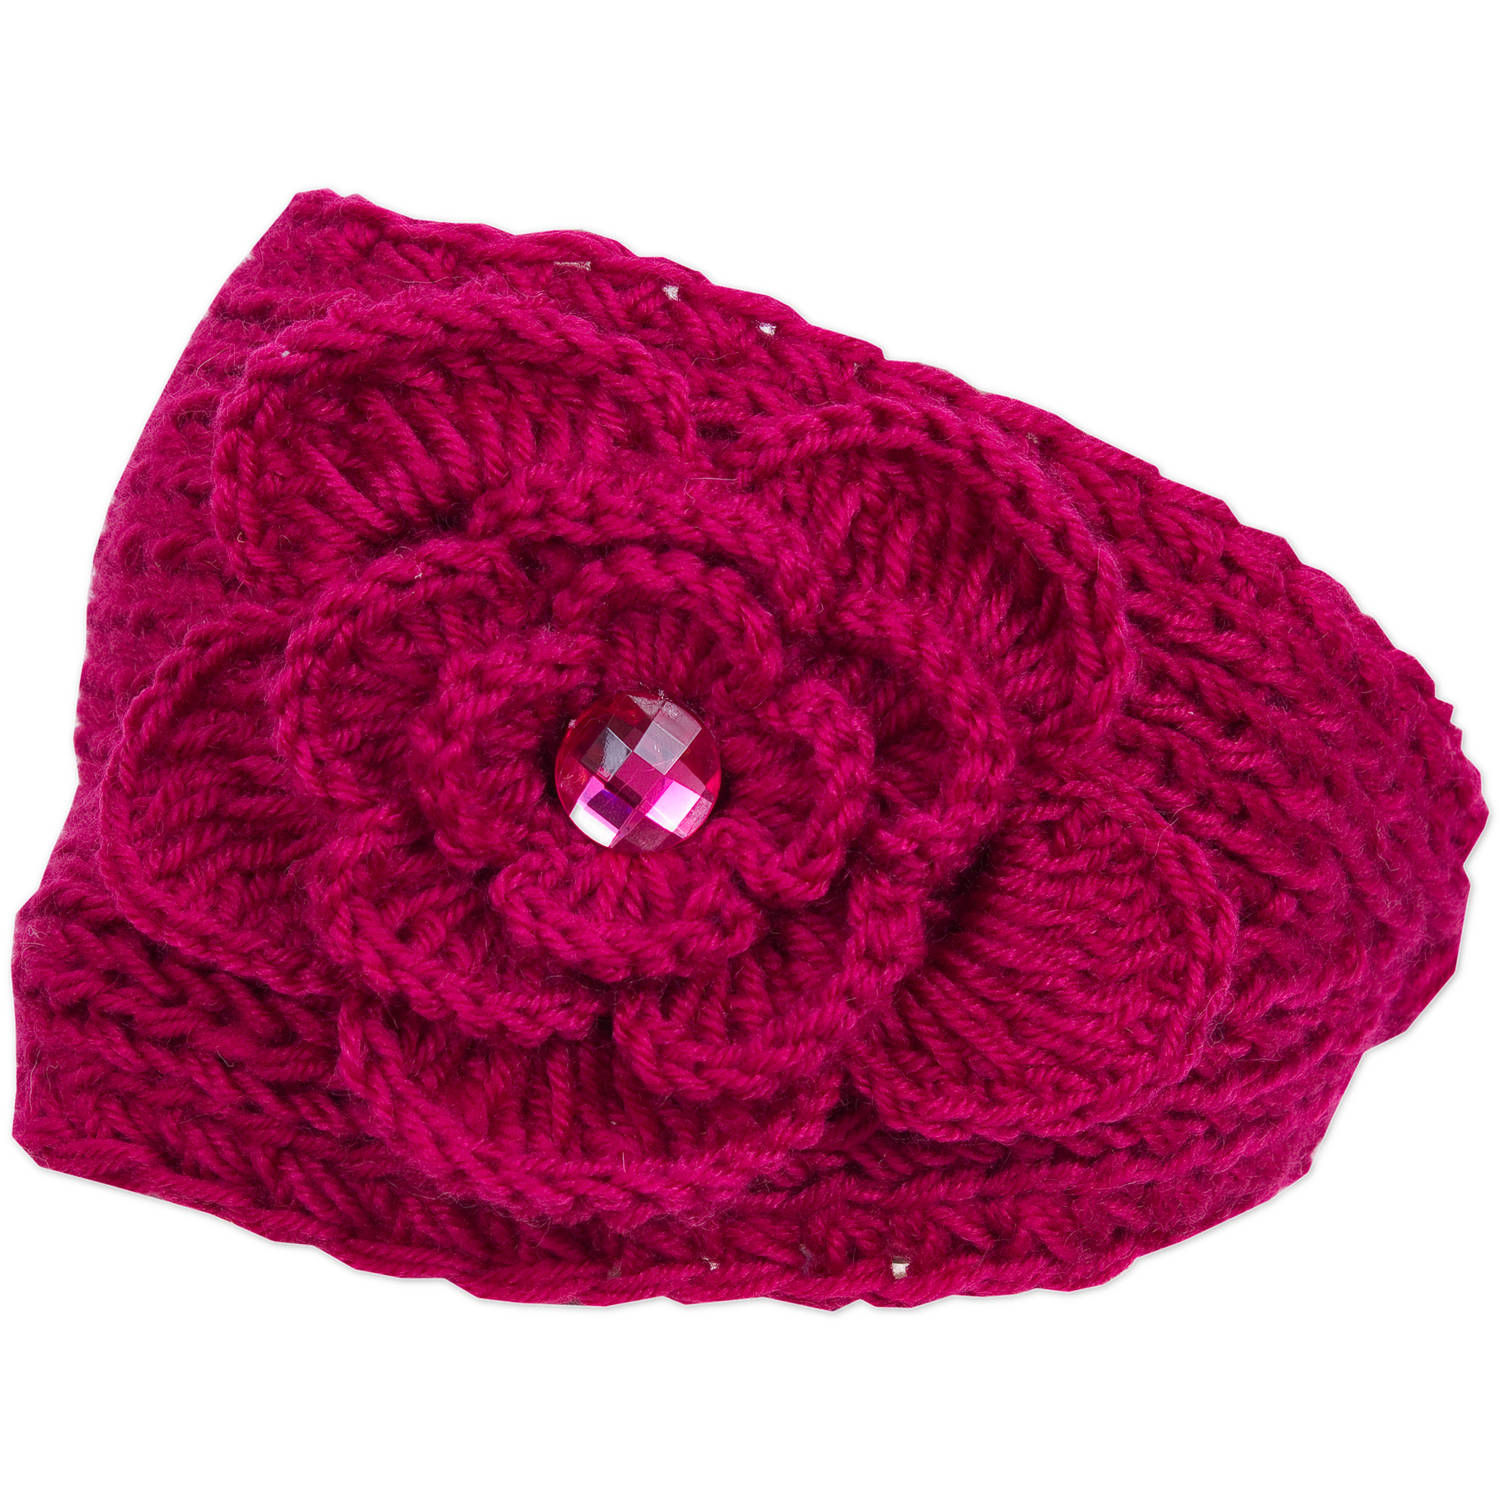 Magid Headwrap with Flower & Rhinestone, Fuchsia